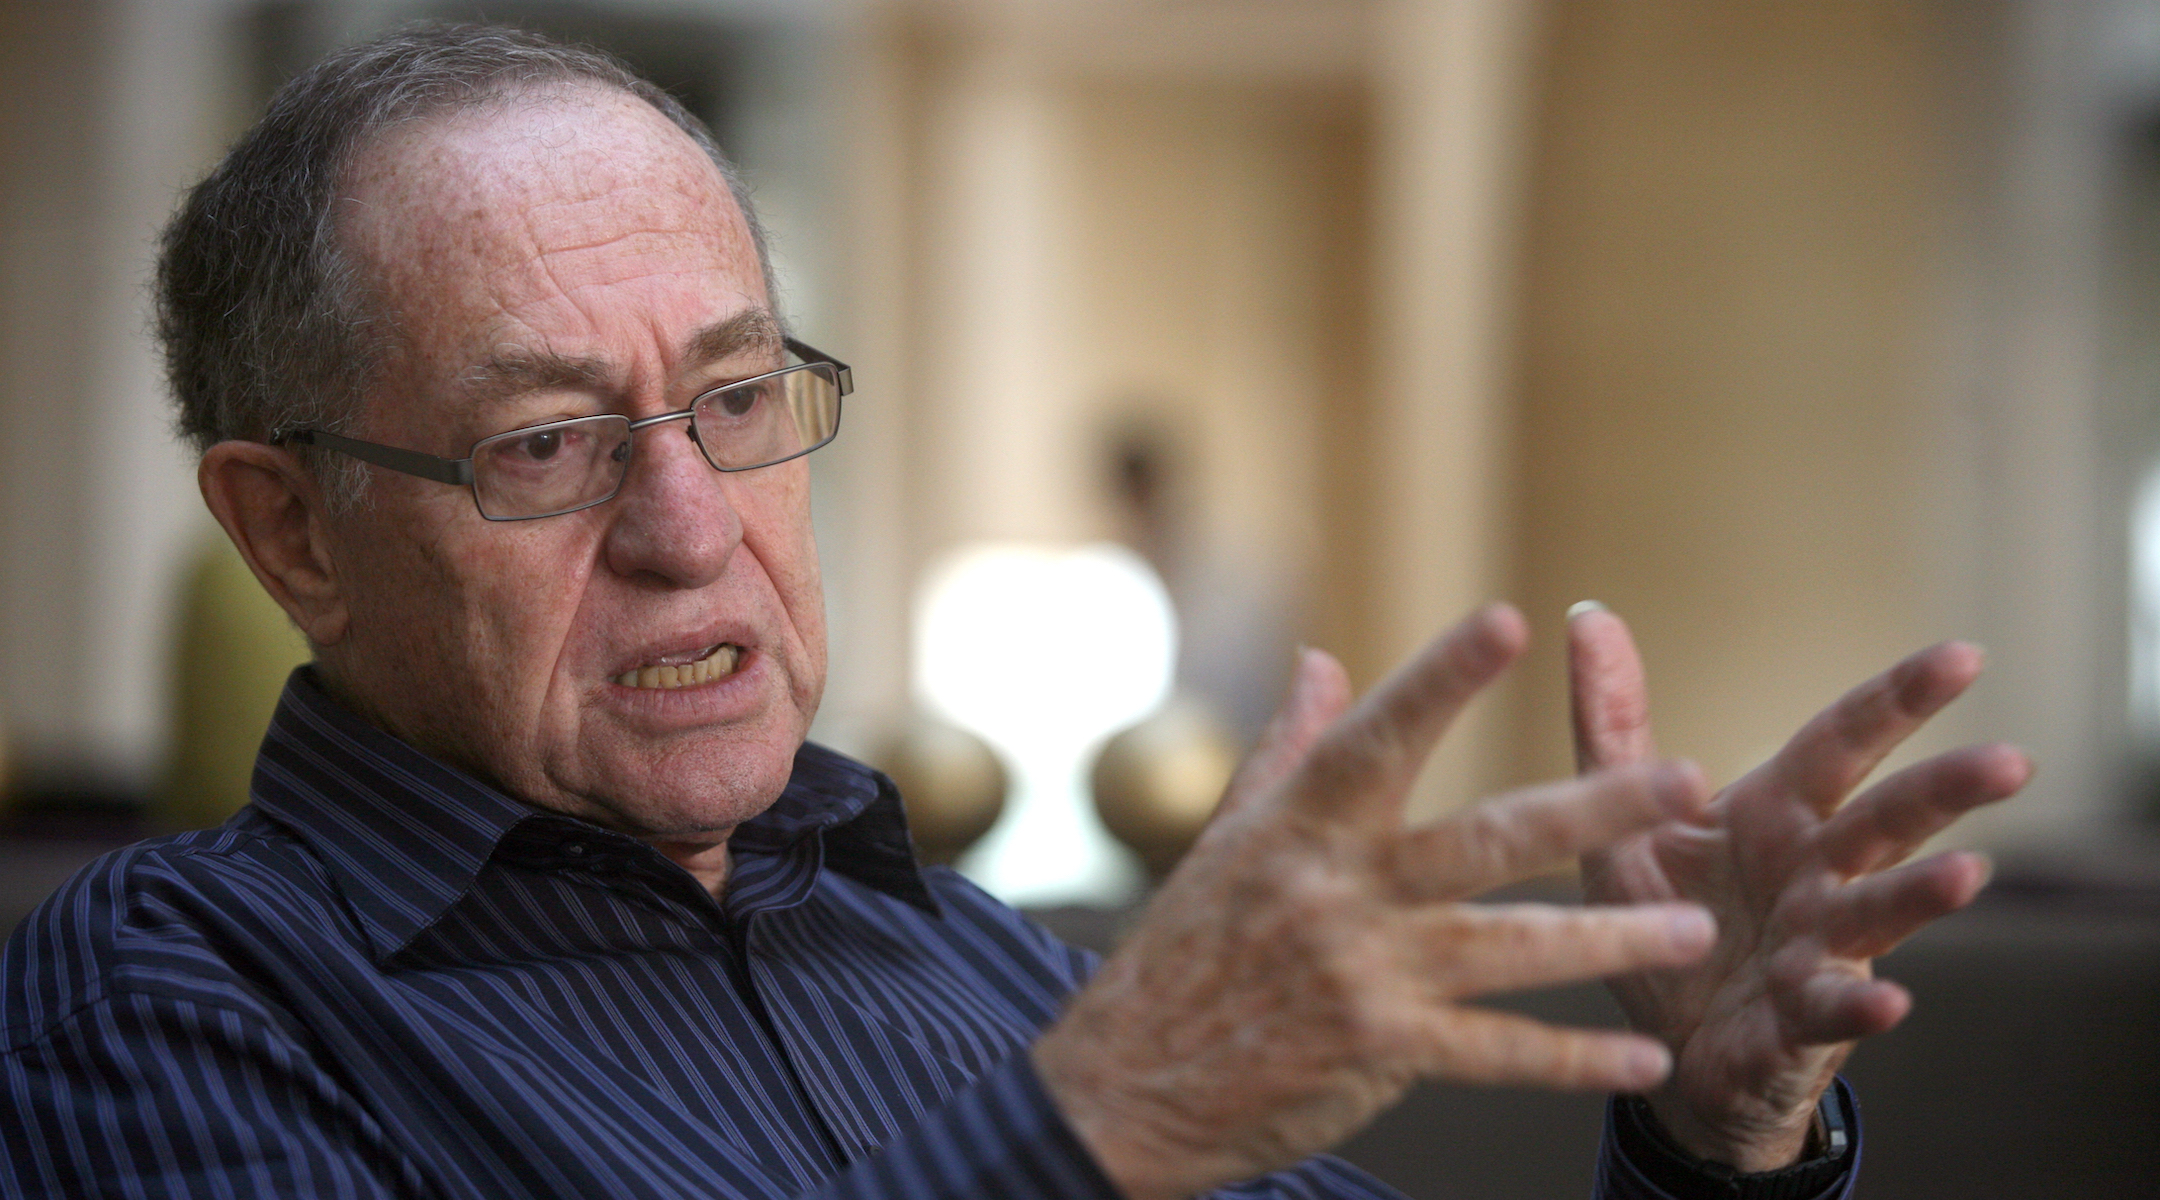 Alan Dershowitz during an interview on May 18, 2010 in Jerusalem, Israel. (Photo/JTA-Lior Mizrahi-Getty Images)